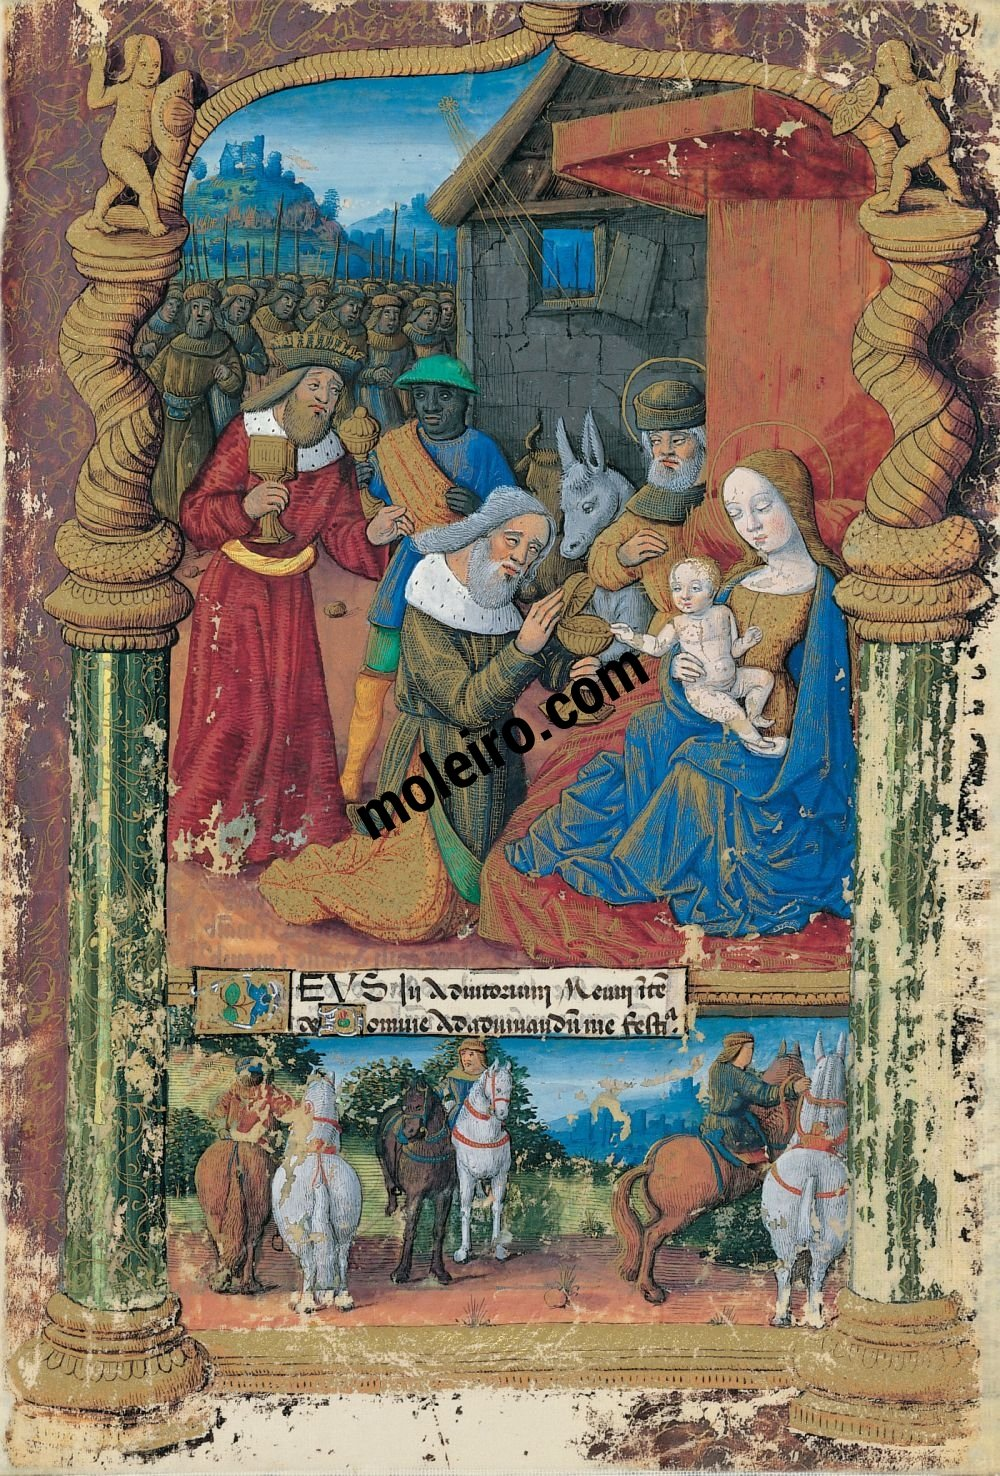 Book of Hours of Louis of Orleans f. 31r, Sixth: The adoration of the Magi